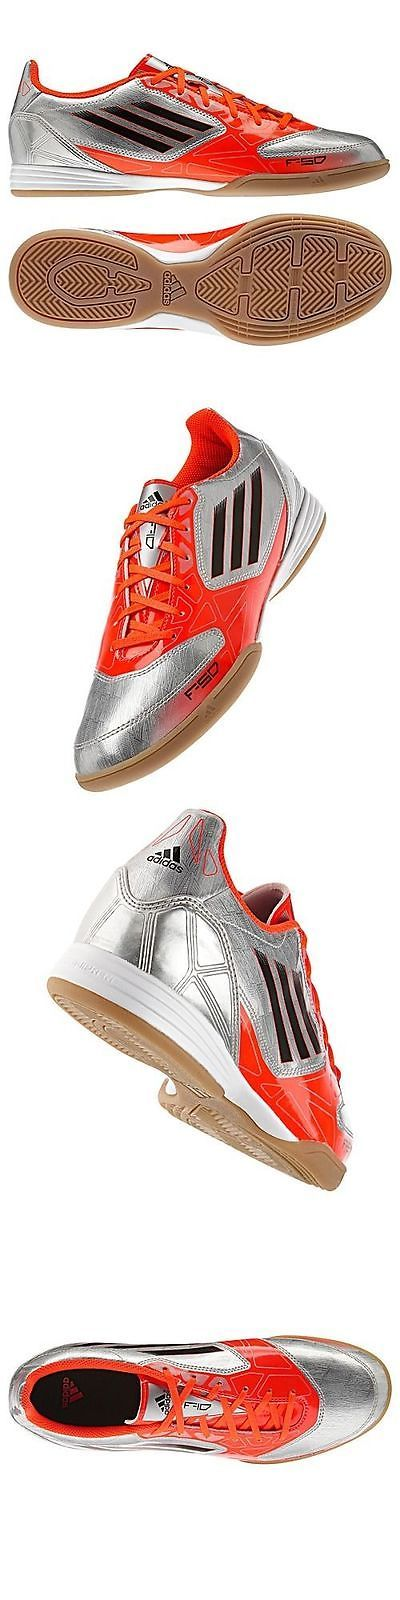 Men 109133: Adidas F10 In Indoor Soccer Shoes Futsal Metallic Silver Messi Color. BUY IT NOW ONLY: $48.75